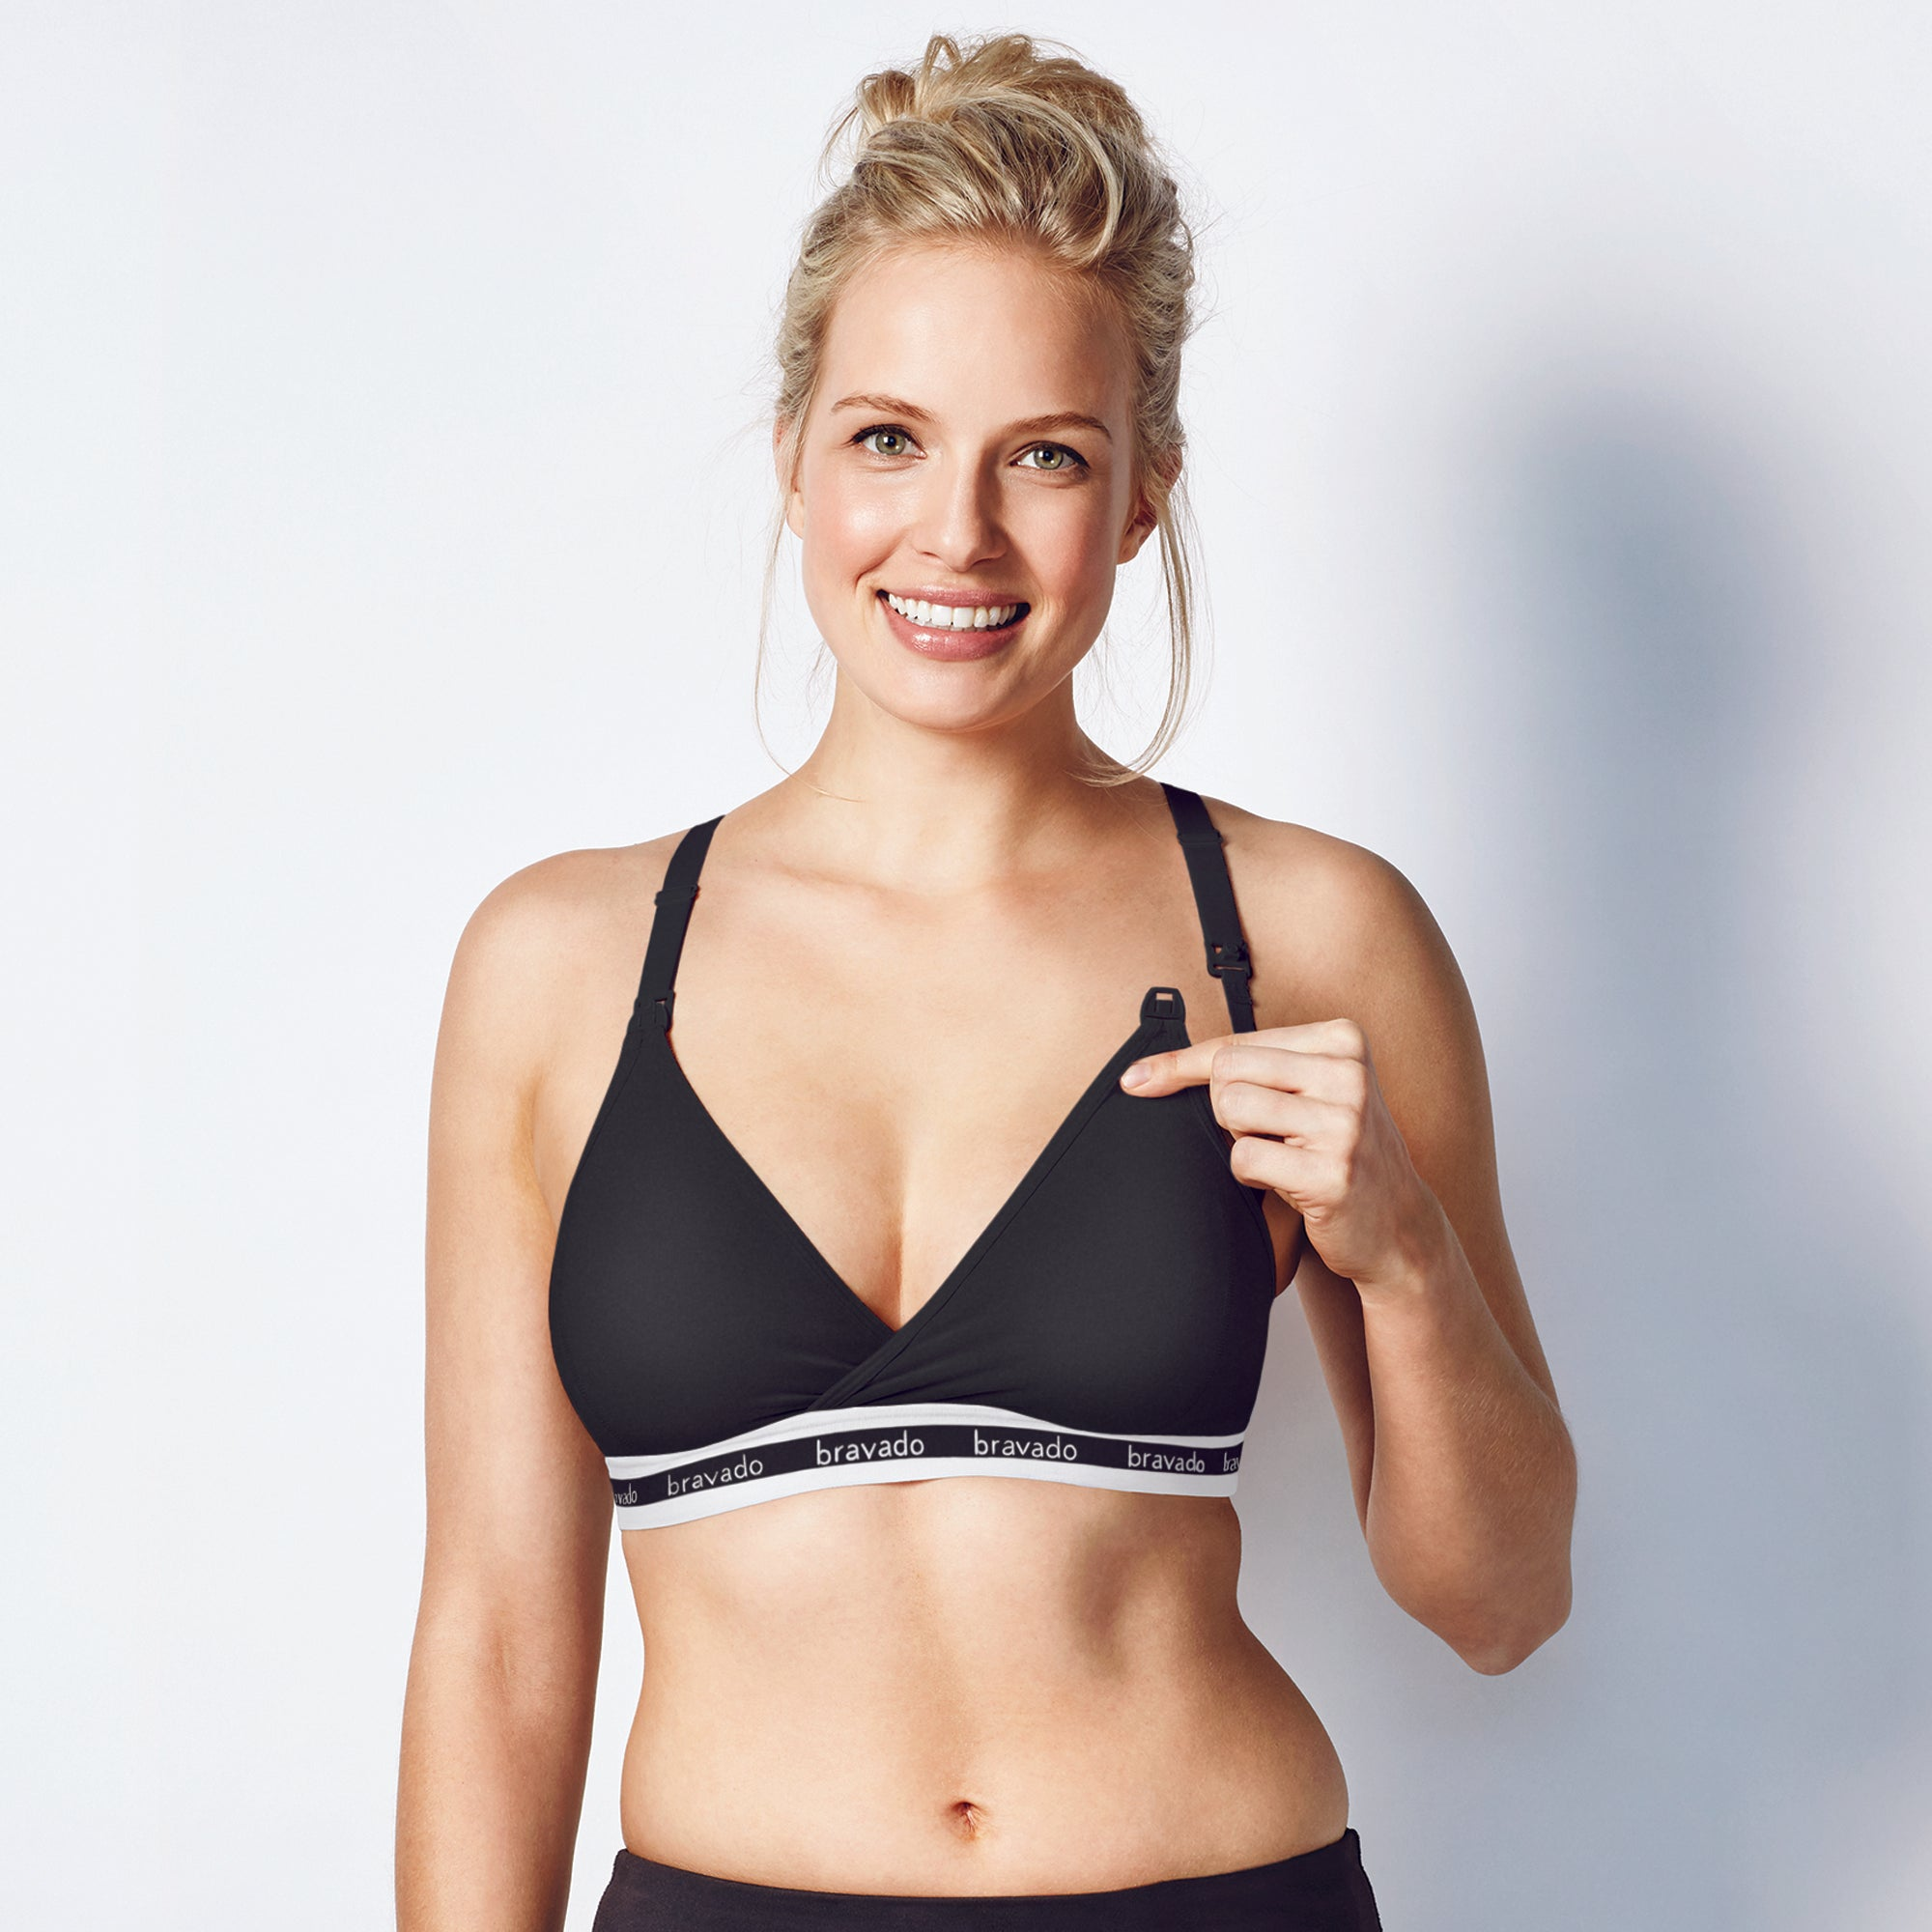 Bravado Original Nursing Bra (Black)